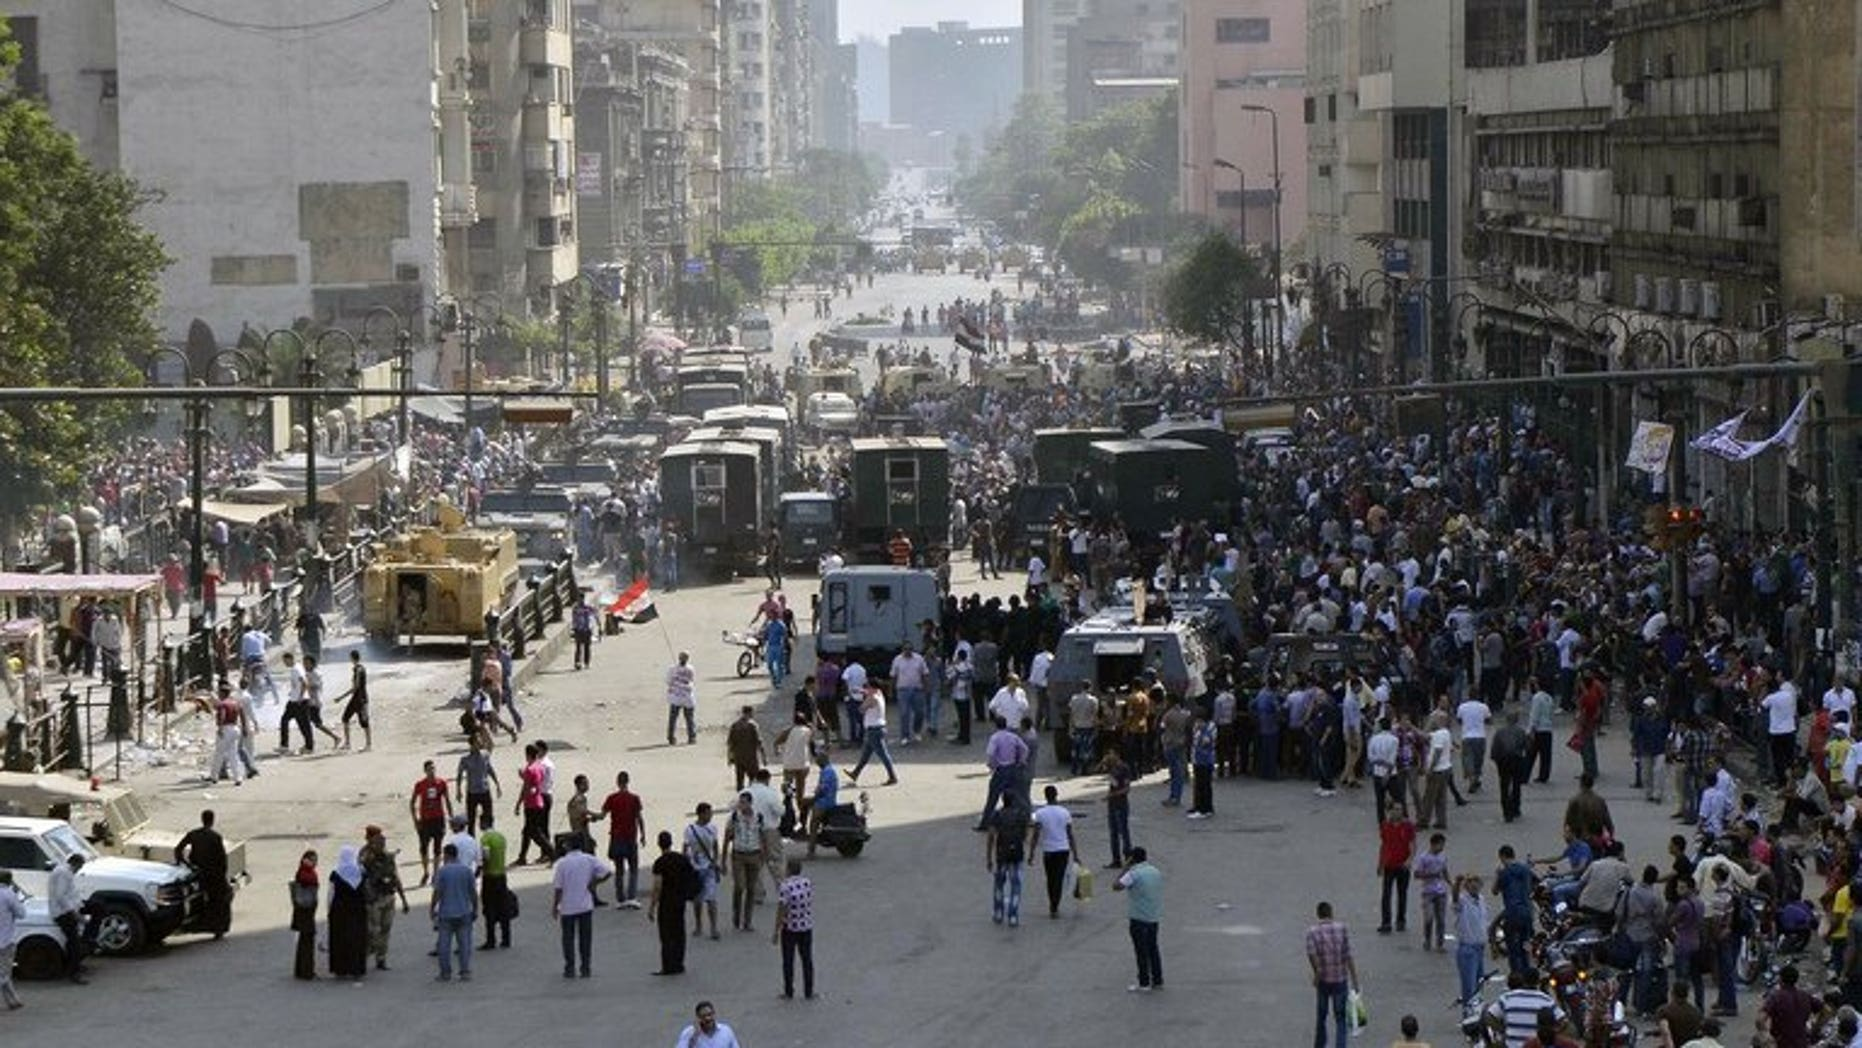 Egyptian demonstrators, soldiers and policemen gather outside Cairo's Al-Fath mosque on August 17, 2013. Two Canadians have been arrested in Egypt amid spiralling bloodshed in the Mideast nation, a Canadian official said Monday.